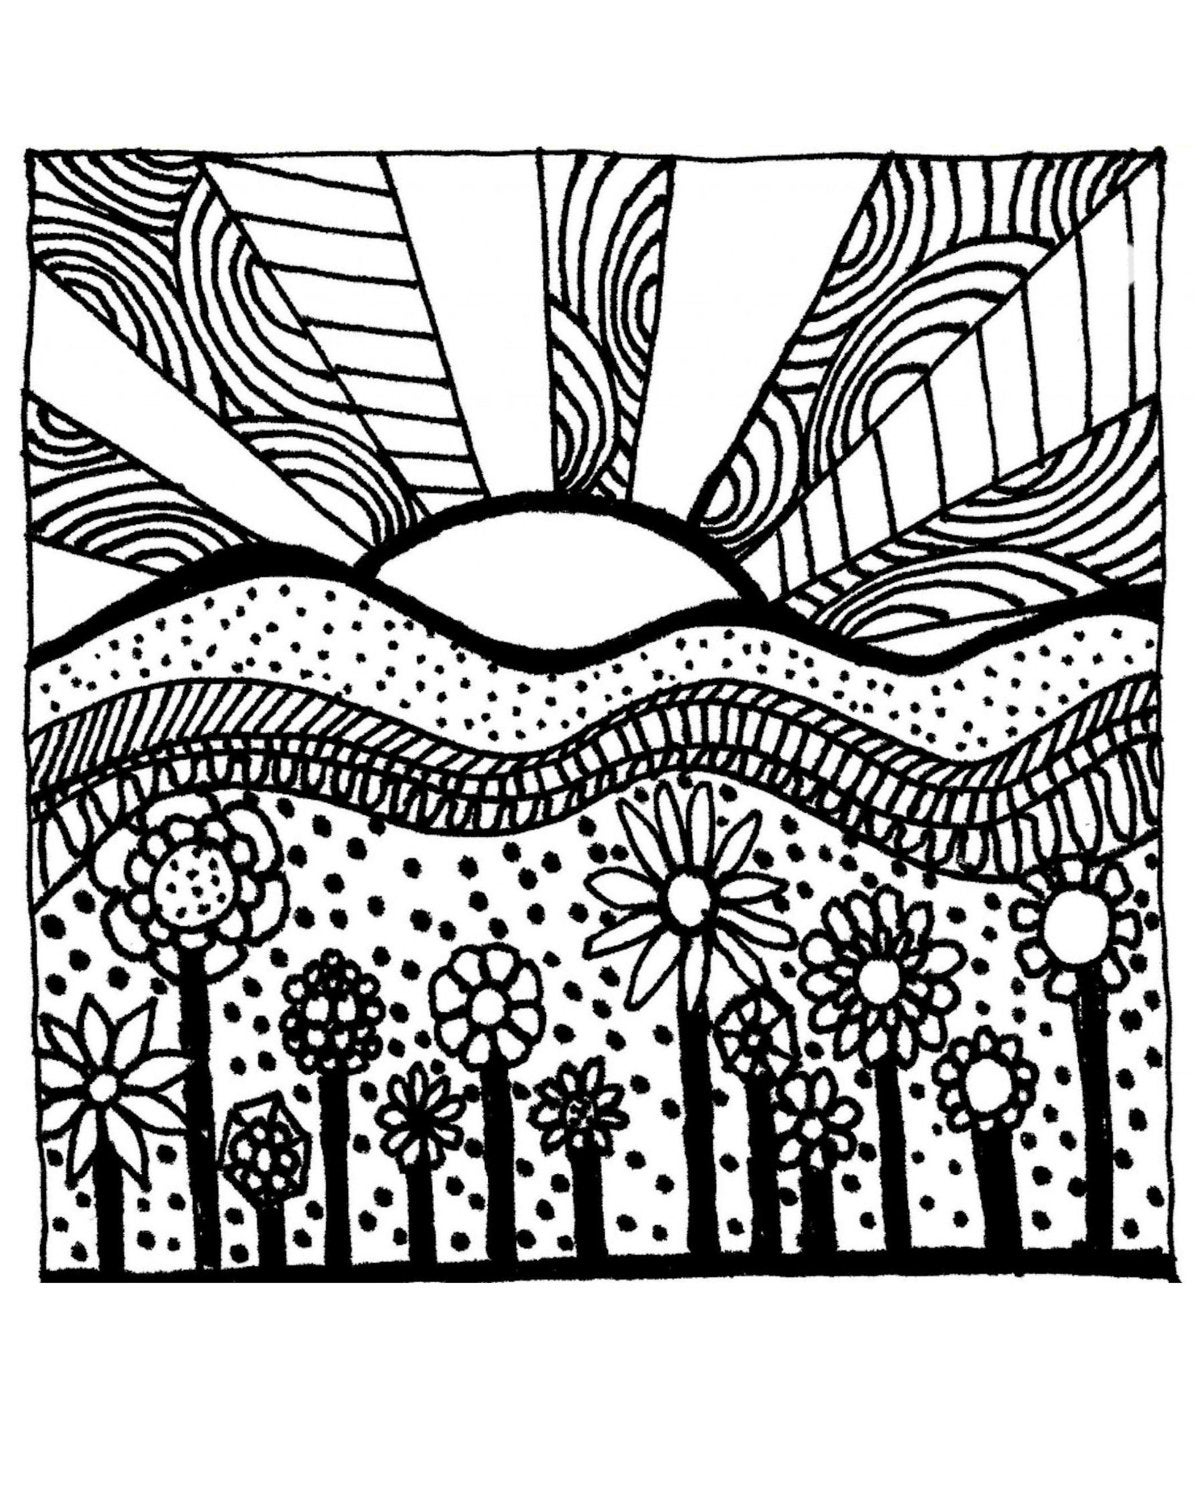 adult coloring pages free expose homelessness fancy stained glass window butterfly free coloring adult pages